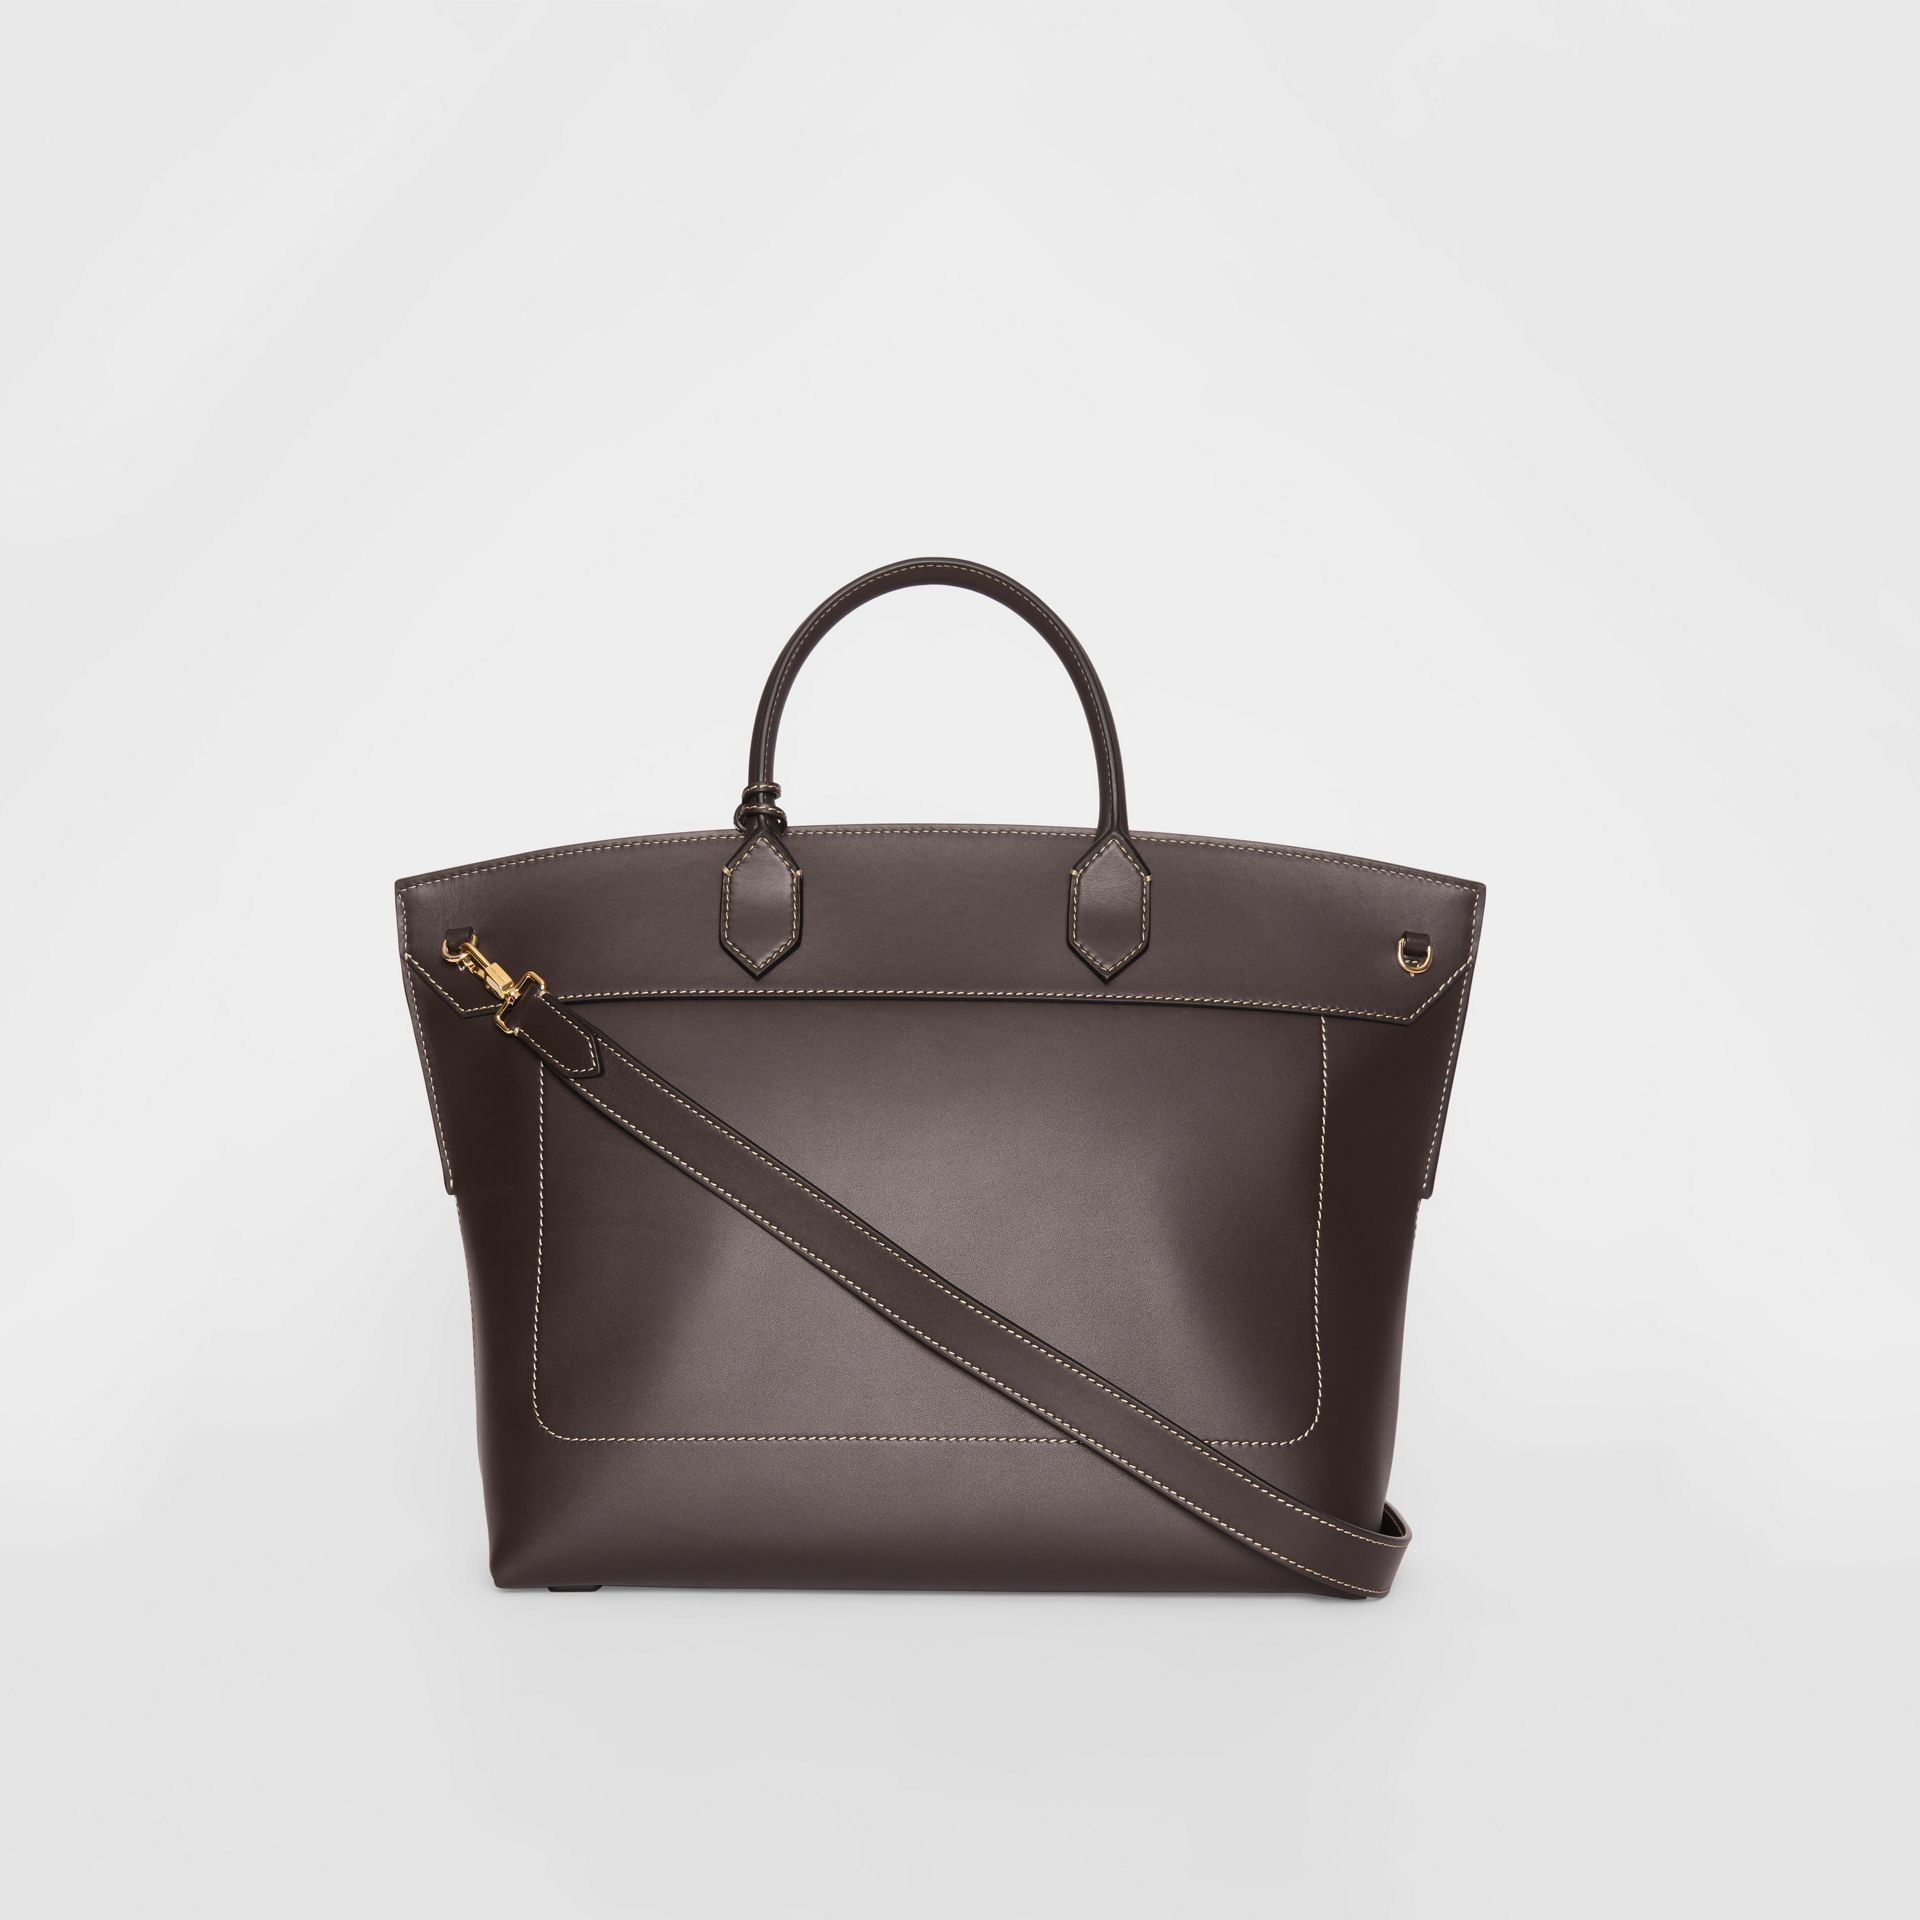 Leather Society Top Handle Bag in Coffee - Women | Burberry United Kingdom - gallery image 7